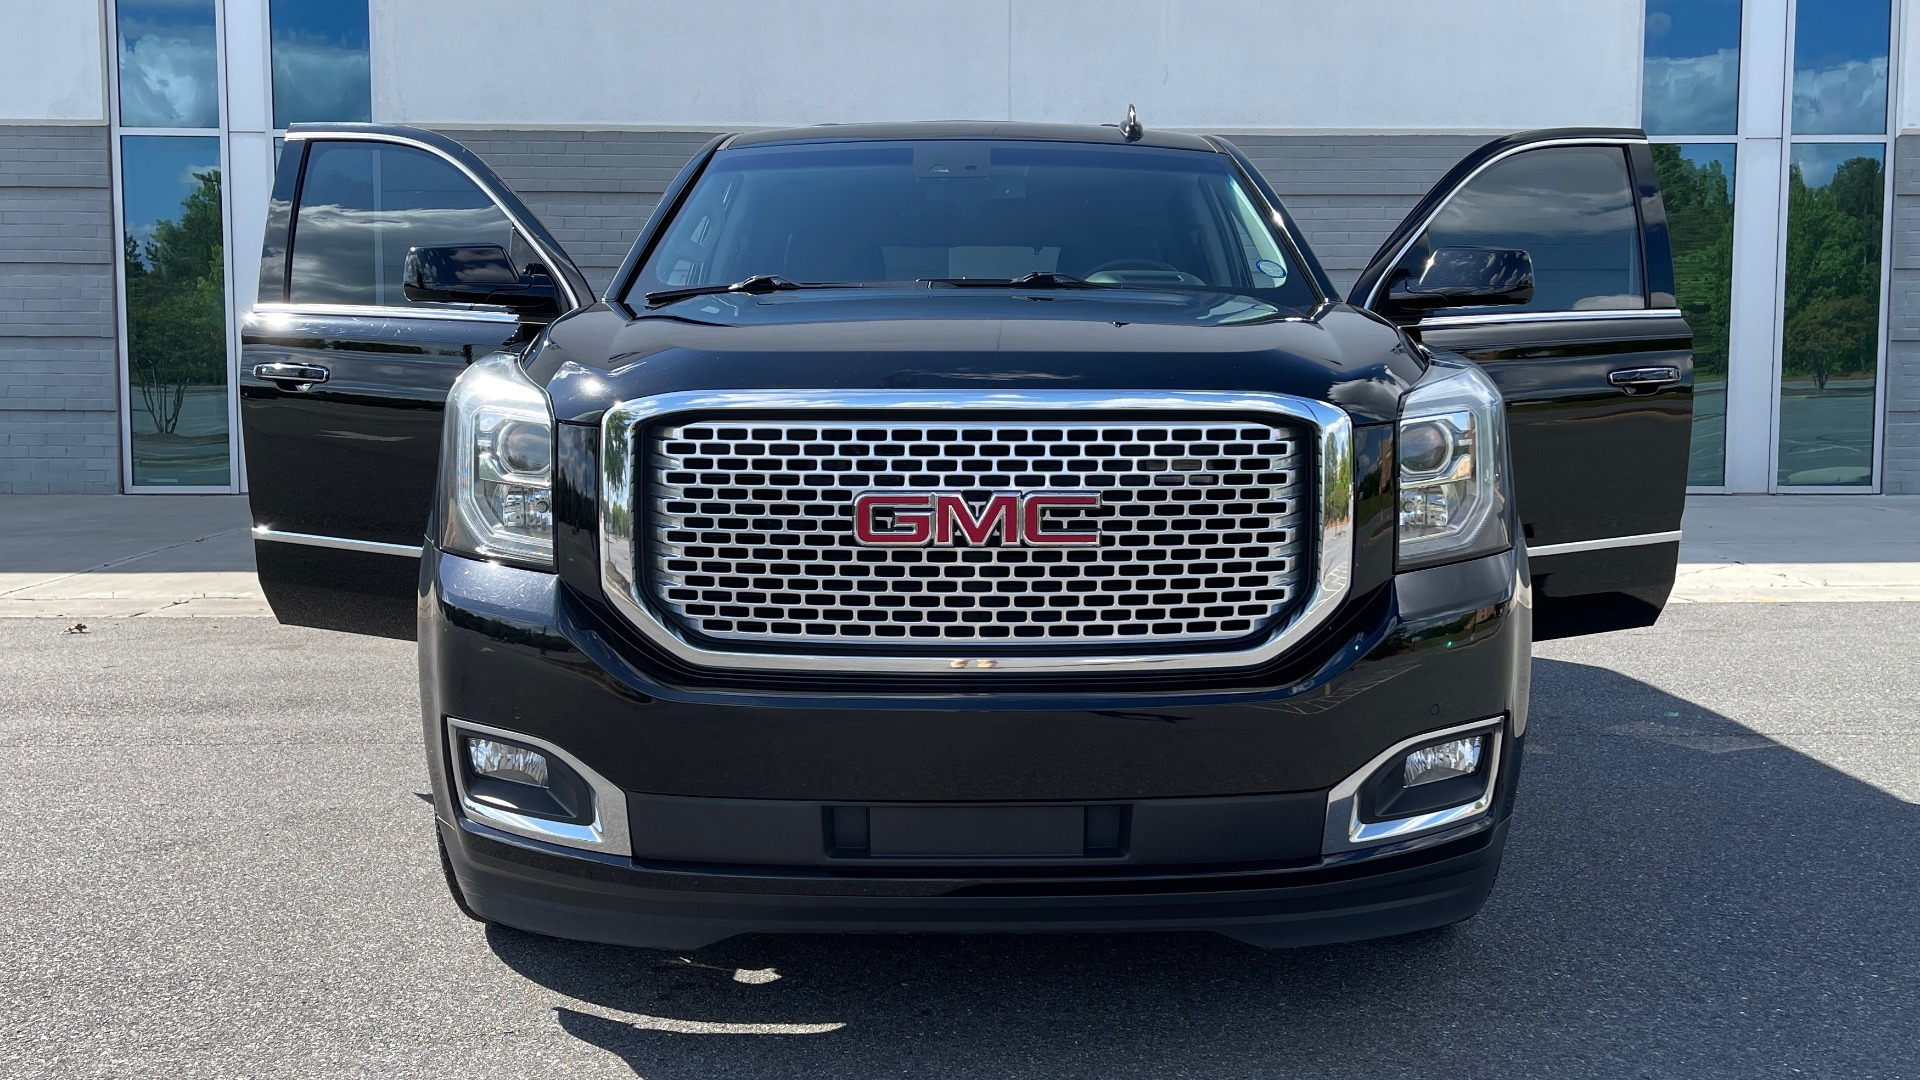 Used 2017 GMC YUKON DENALI 4WD / OPEN ROAD / NAV / ENTERTAINMENT / SUNROOF / ADAPT CRUISE for sale Sold at Formula Imports in Charlotte NC 28227 11